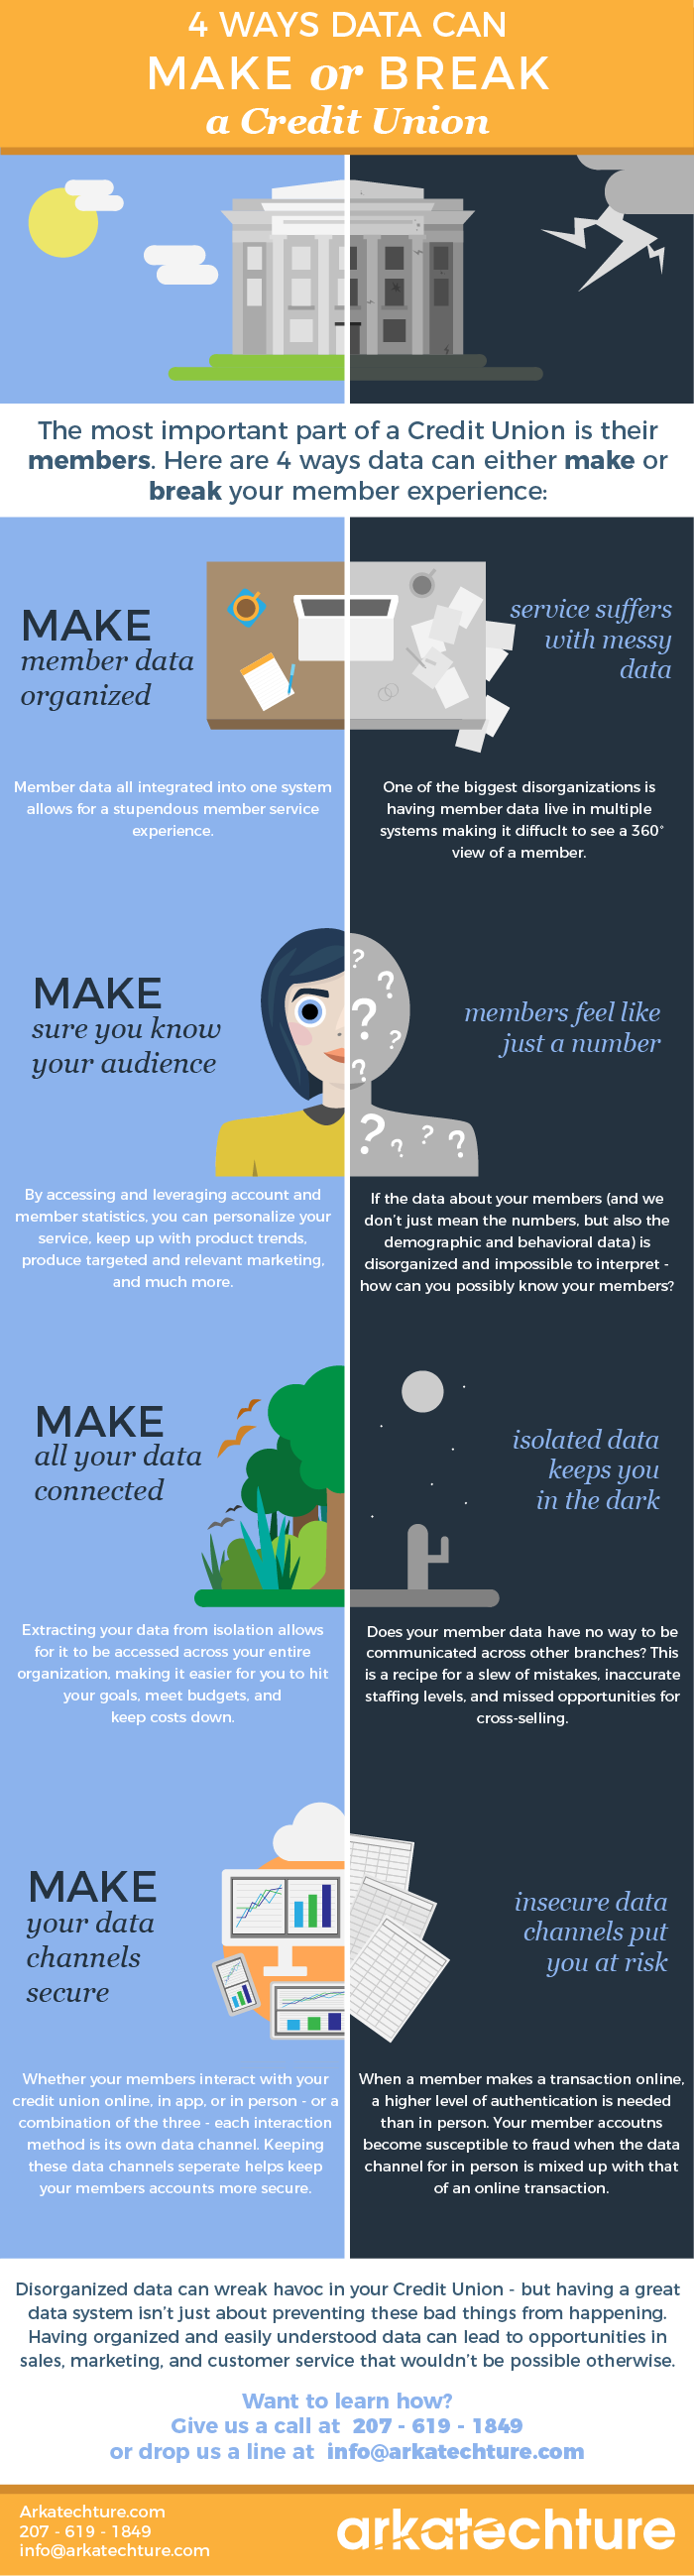 4_Ways_Data_Can_Make_or_Break_A_Credit_Union.png